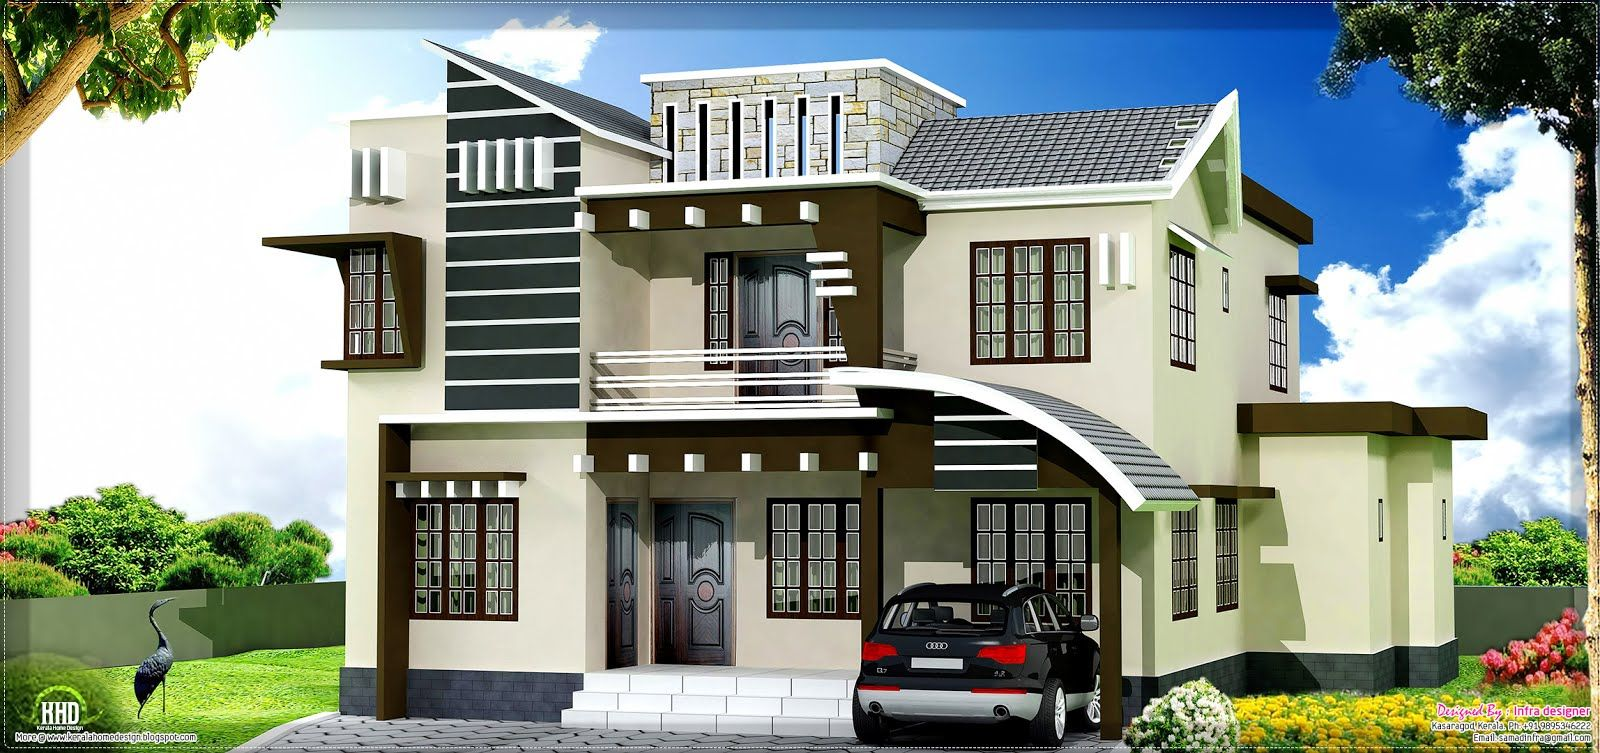 Beau 2450 Sq.feet Home Design From Kasaragod, Kerala   Kerala Home Design .